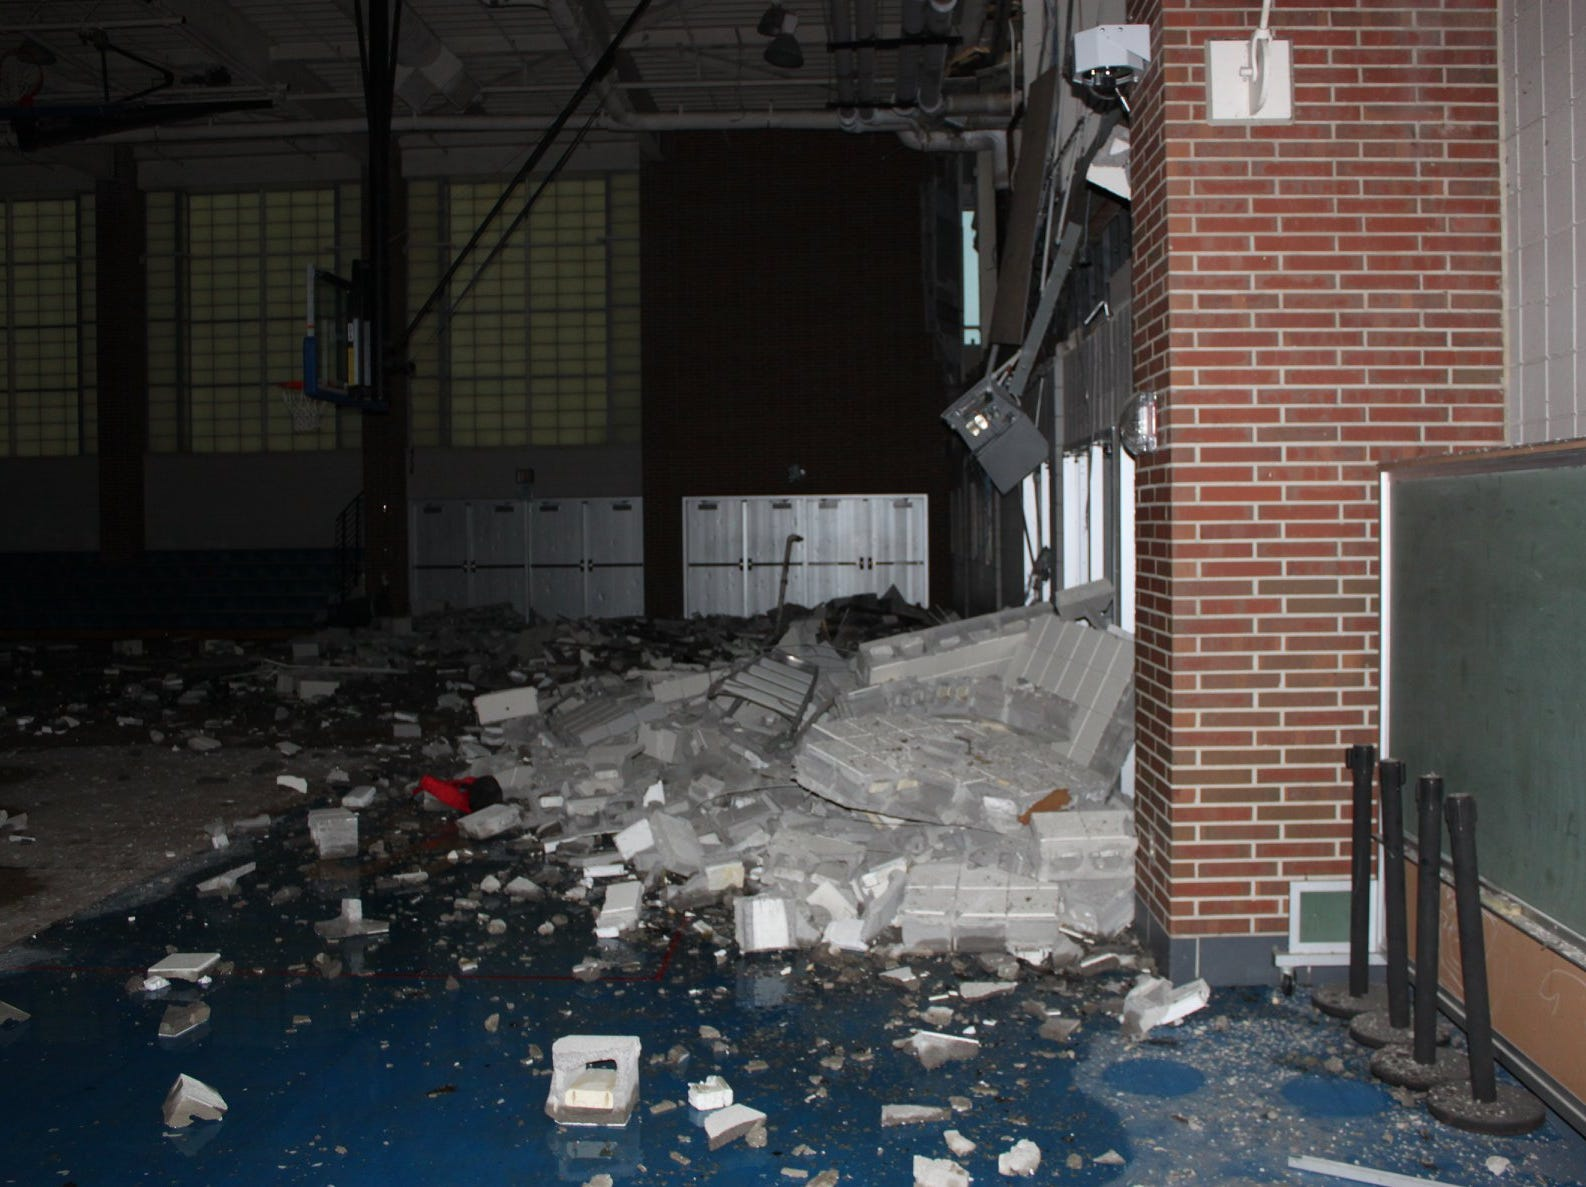 Aftermath of the explosion that occurred during maintenance to a heater at Carmel High School. Two were injured in the blast.